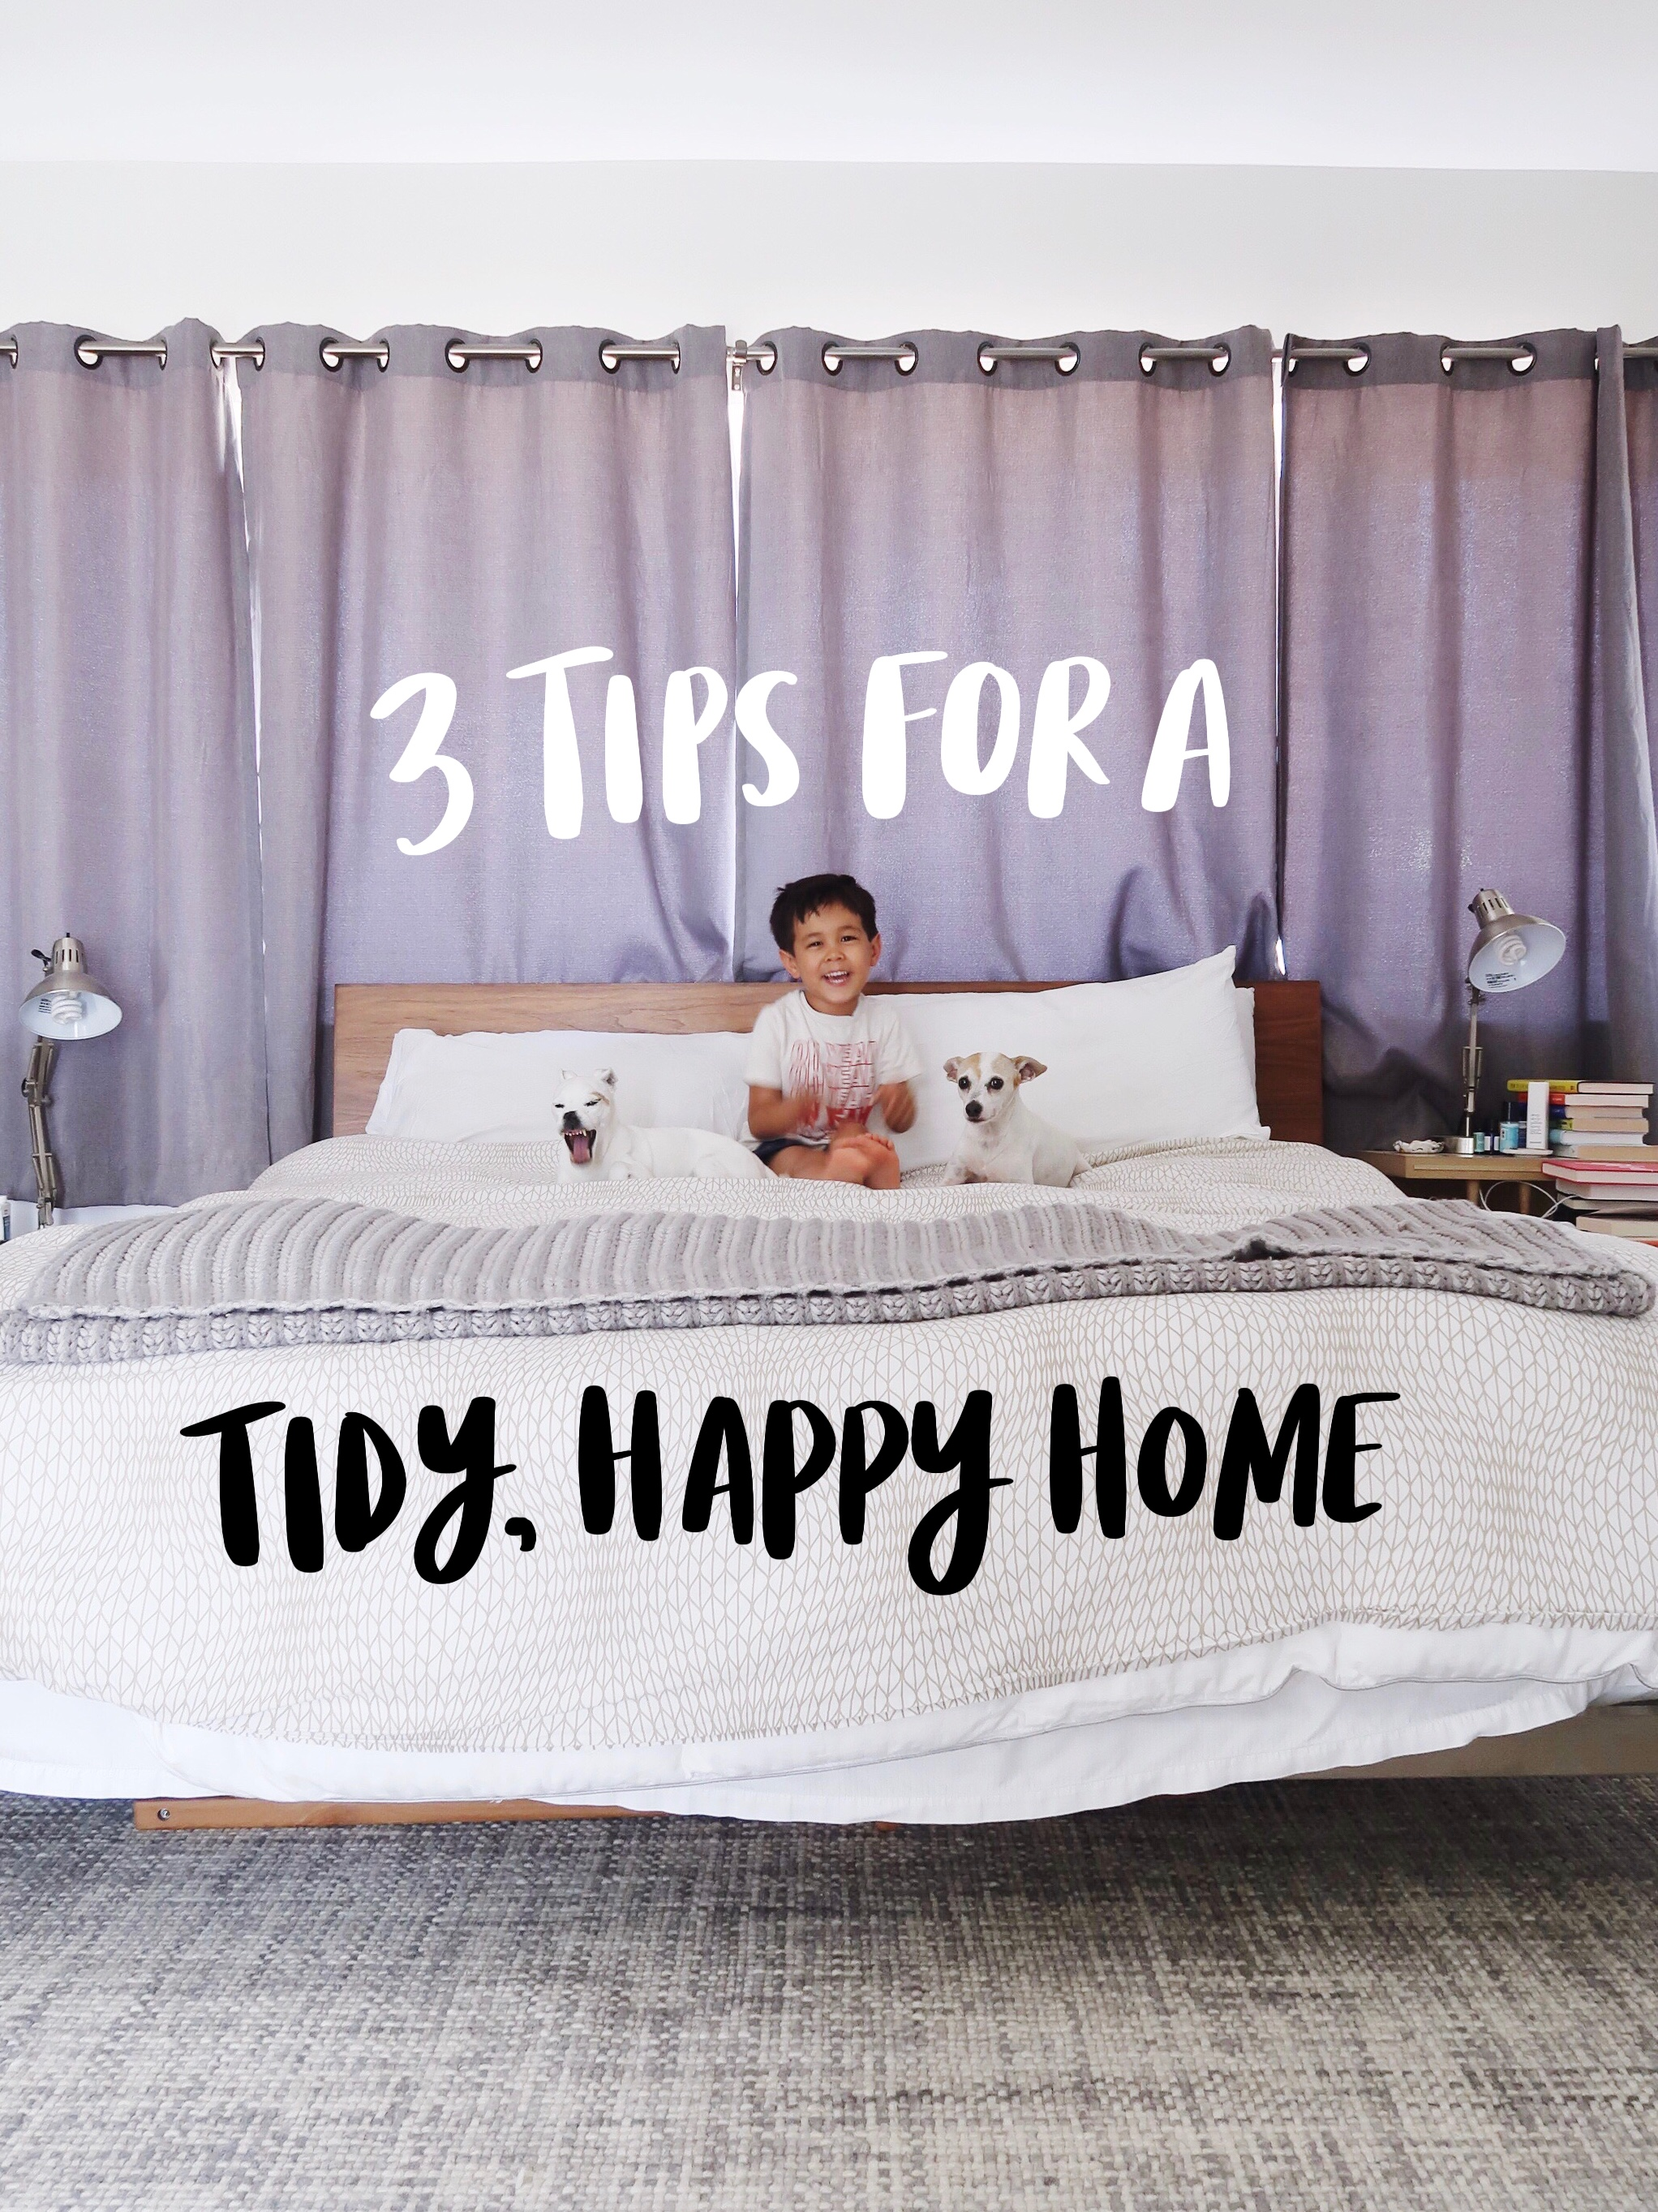 3 TIPS FOR A TIDY, HAPPY HOME